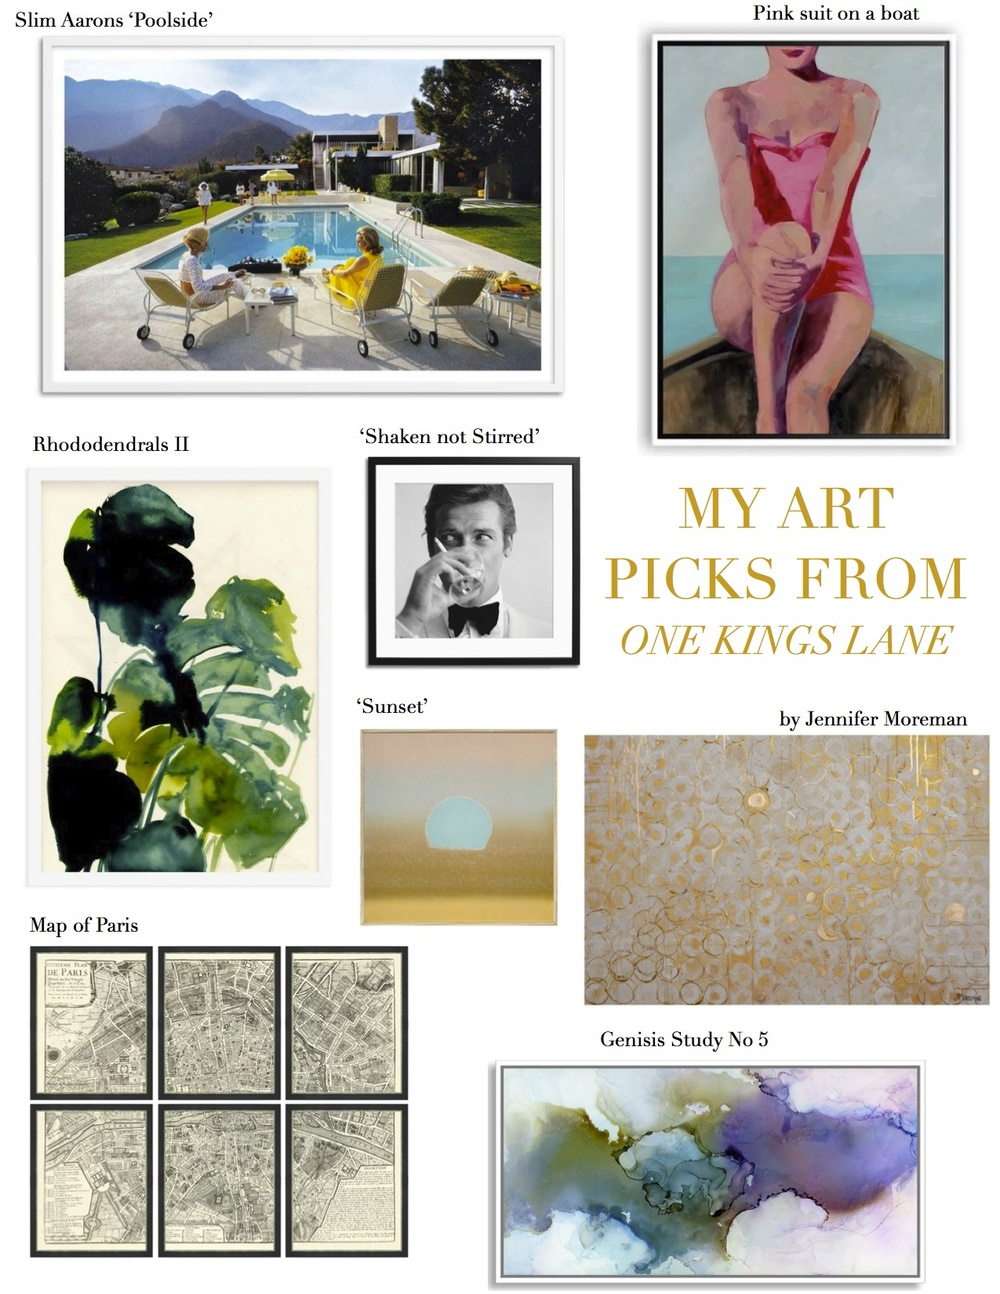 One Kings Lane - Art selections - The Decorista